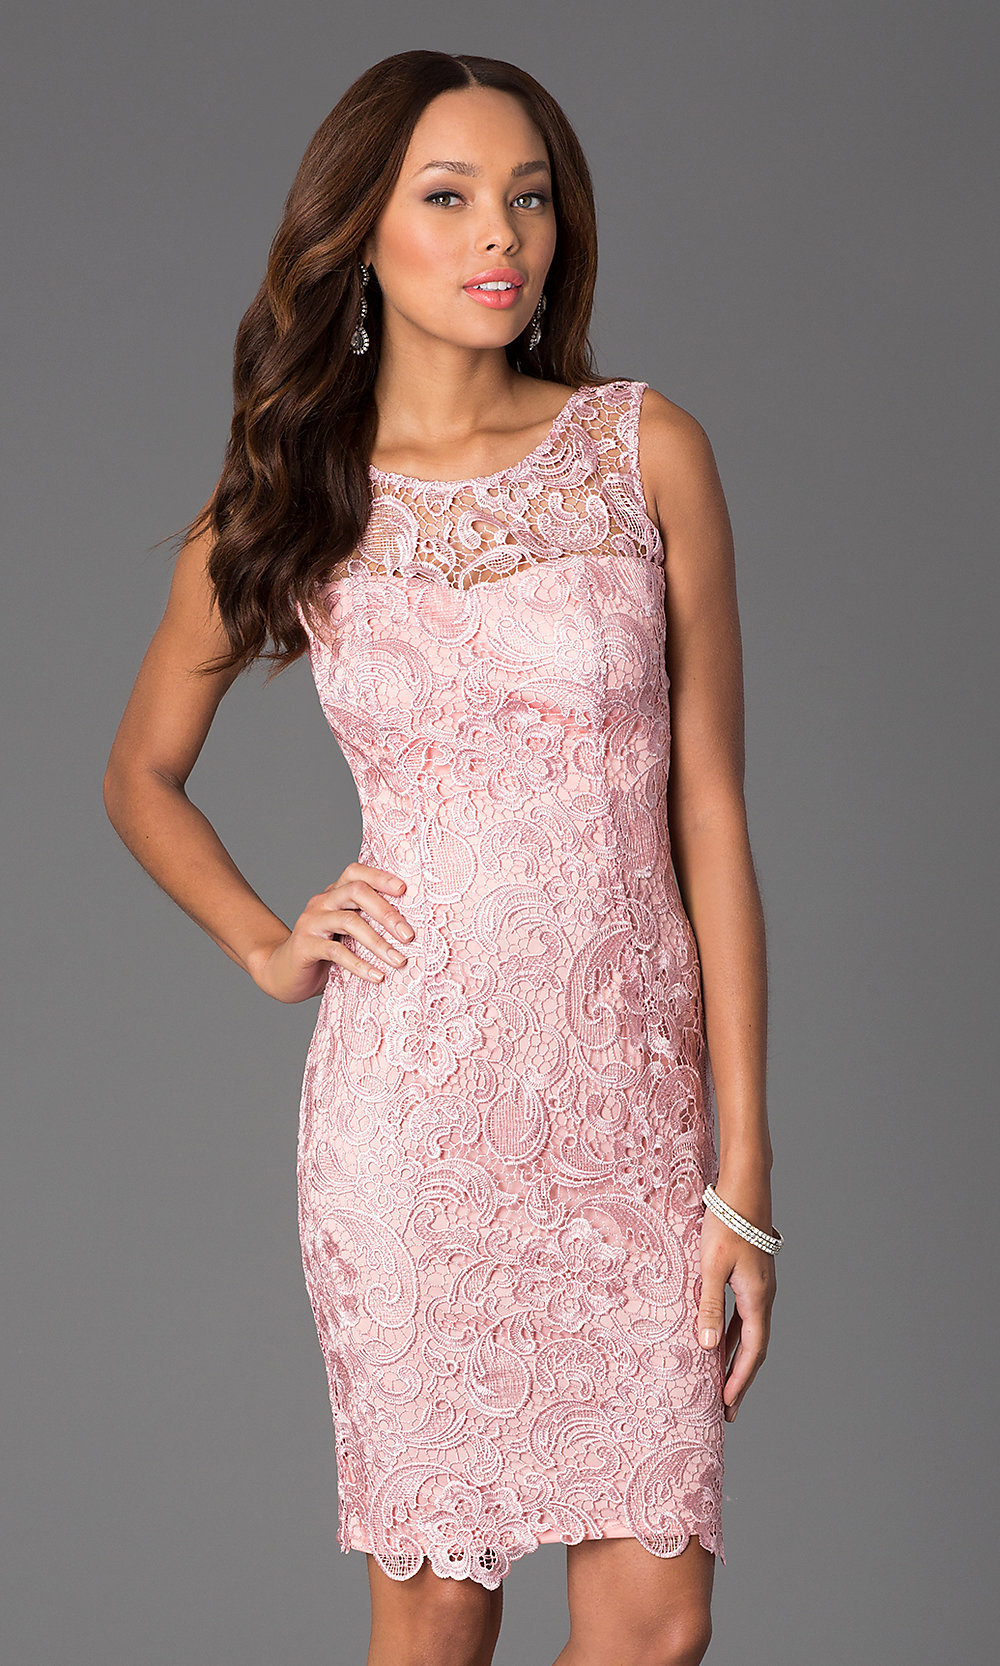 Pink Knee Length Dress with Sleeves and Lace